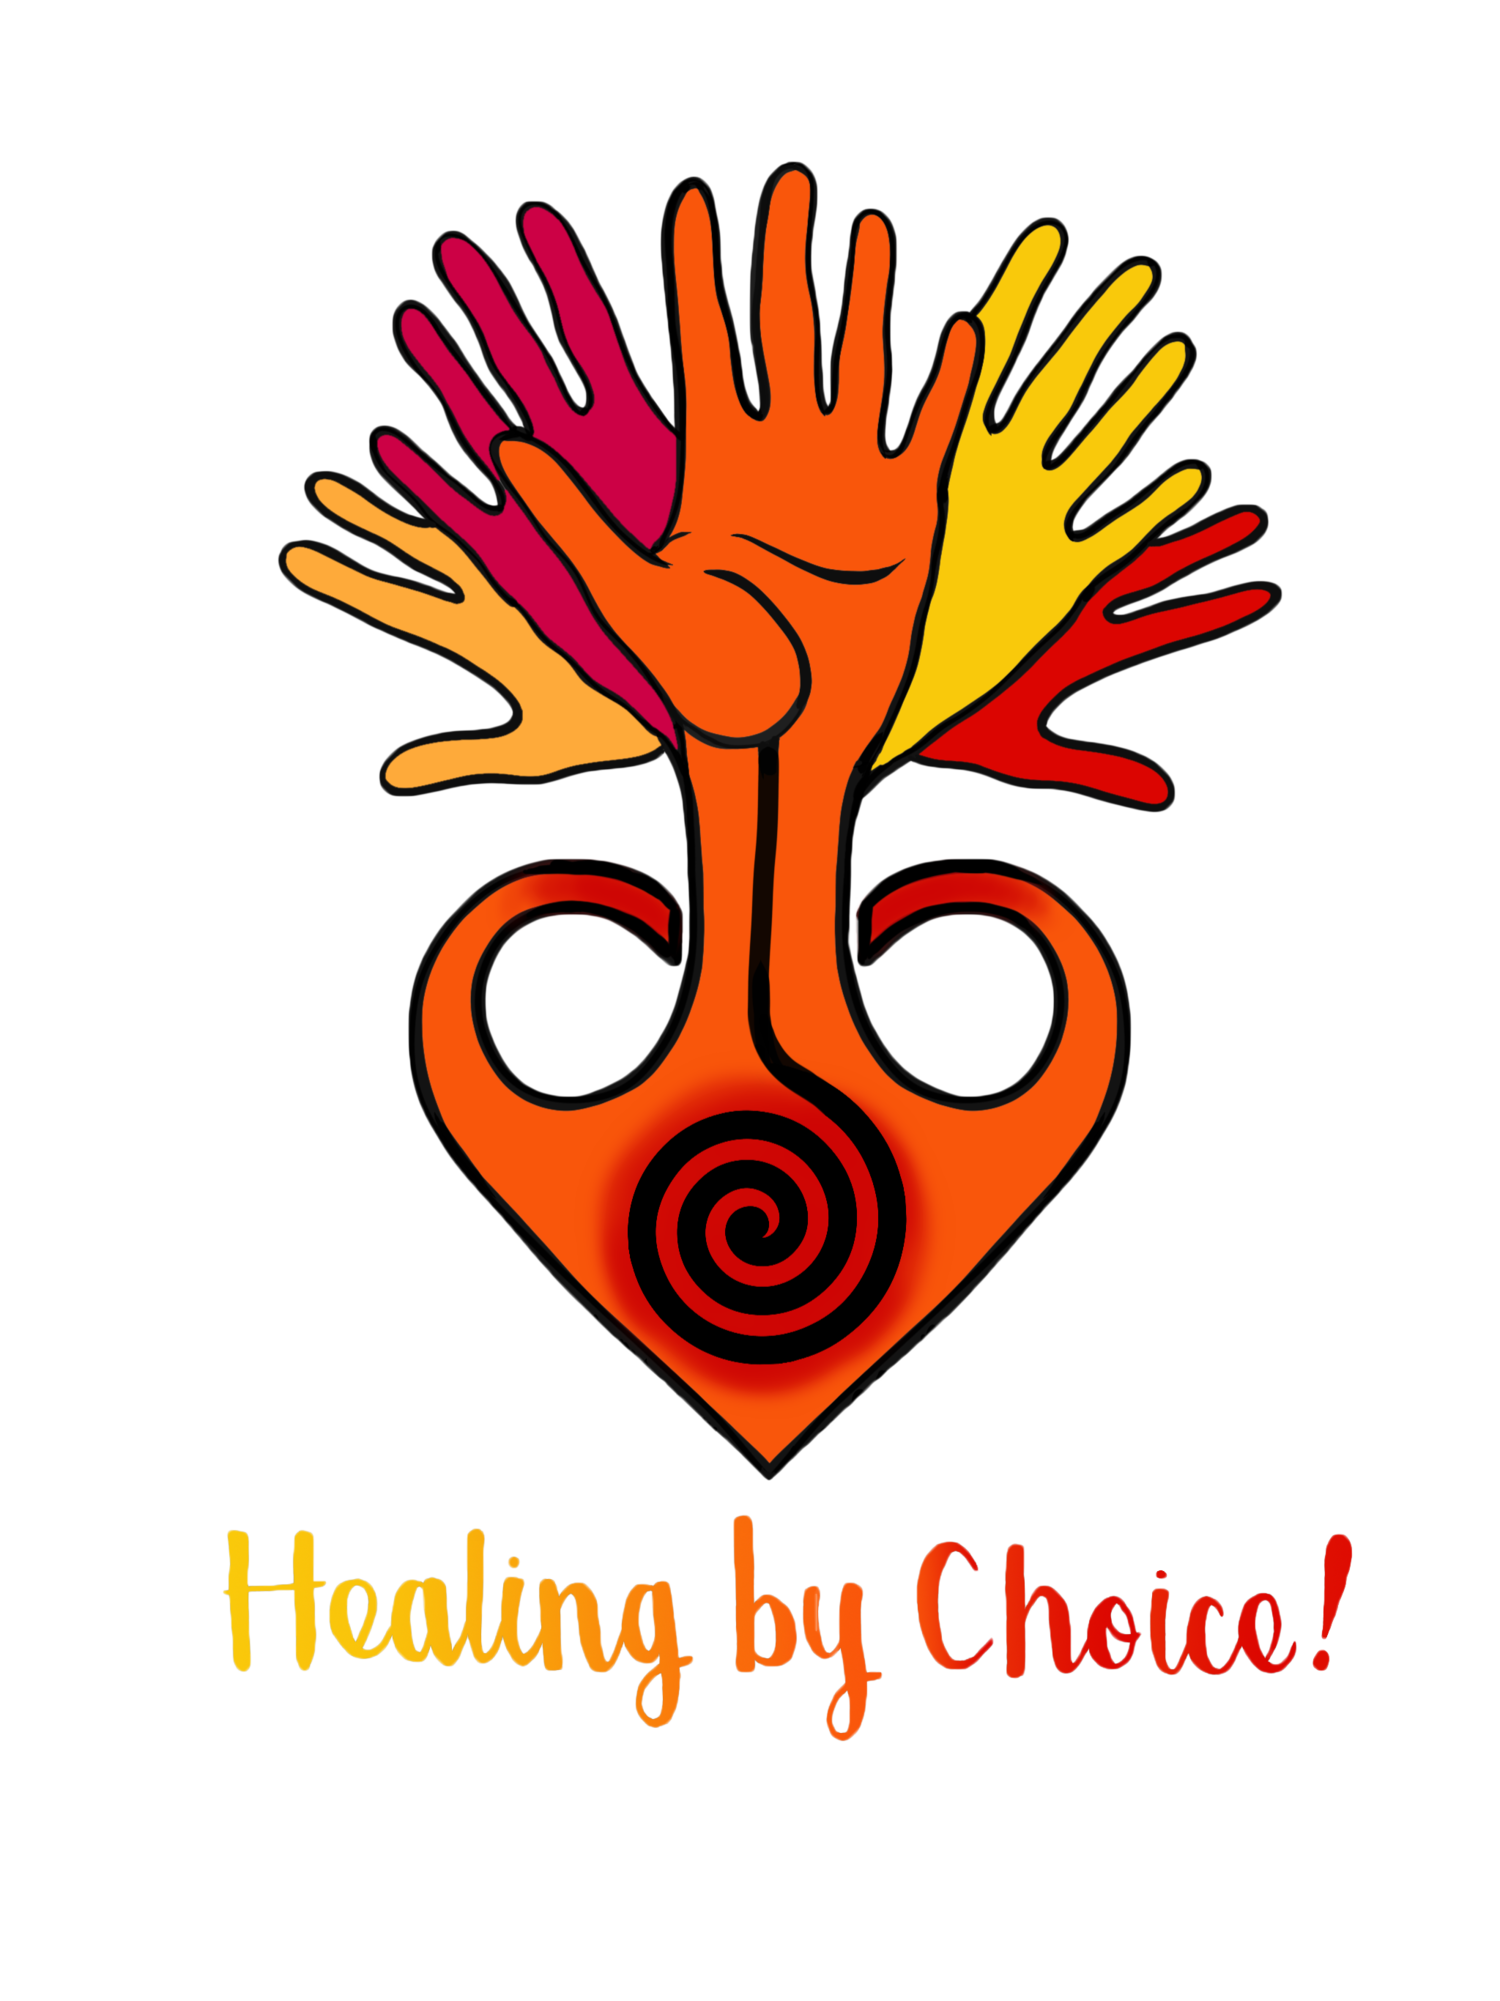 Healing by Choice!